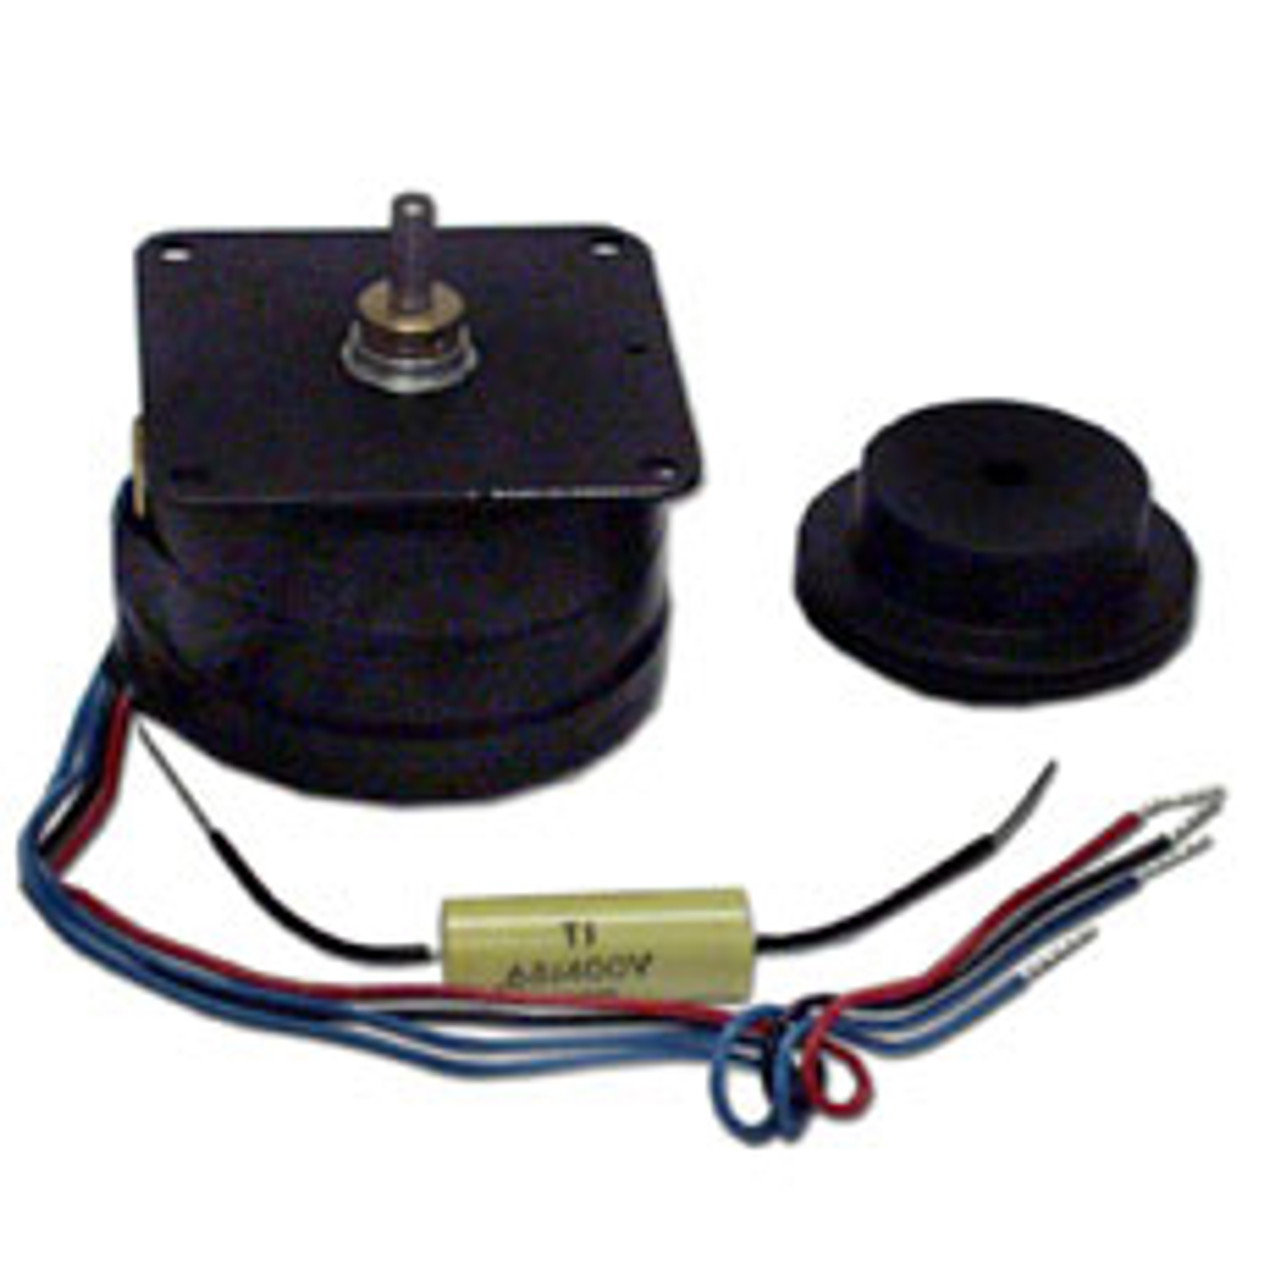 VPI 300rpm motor upgrade kit